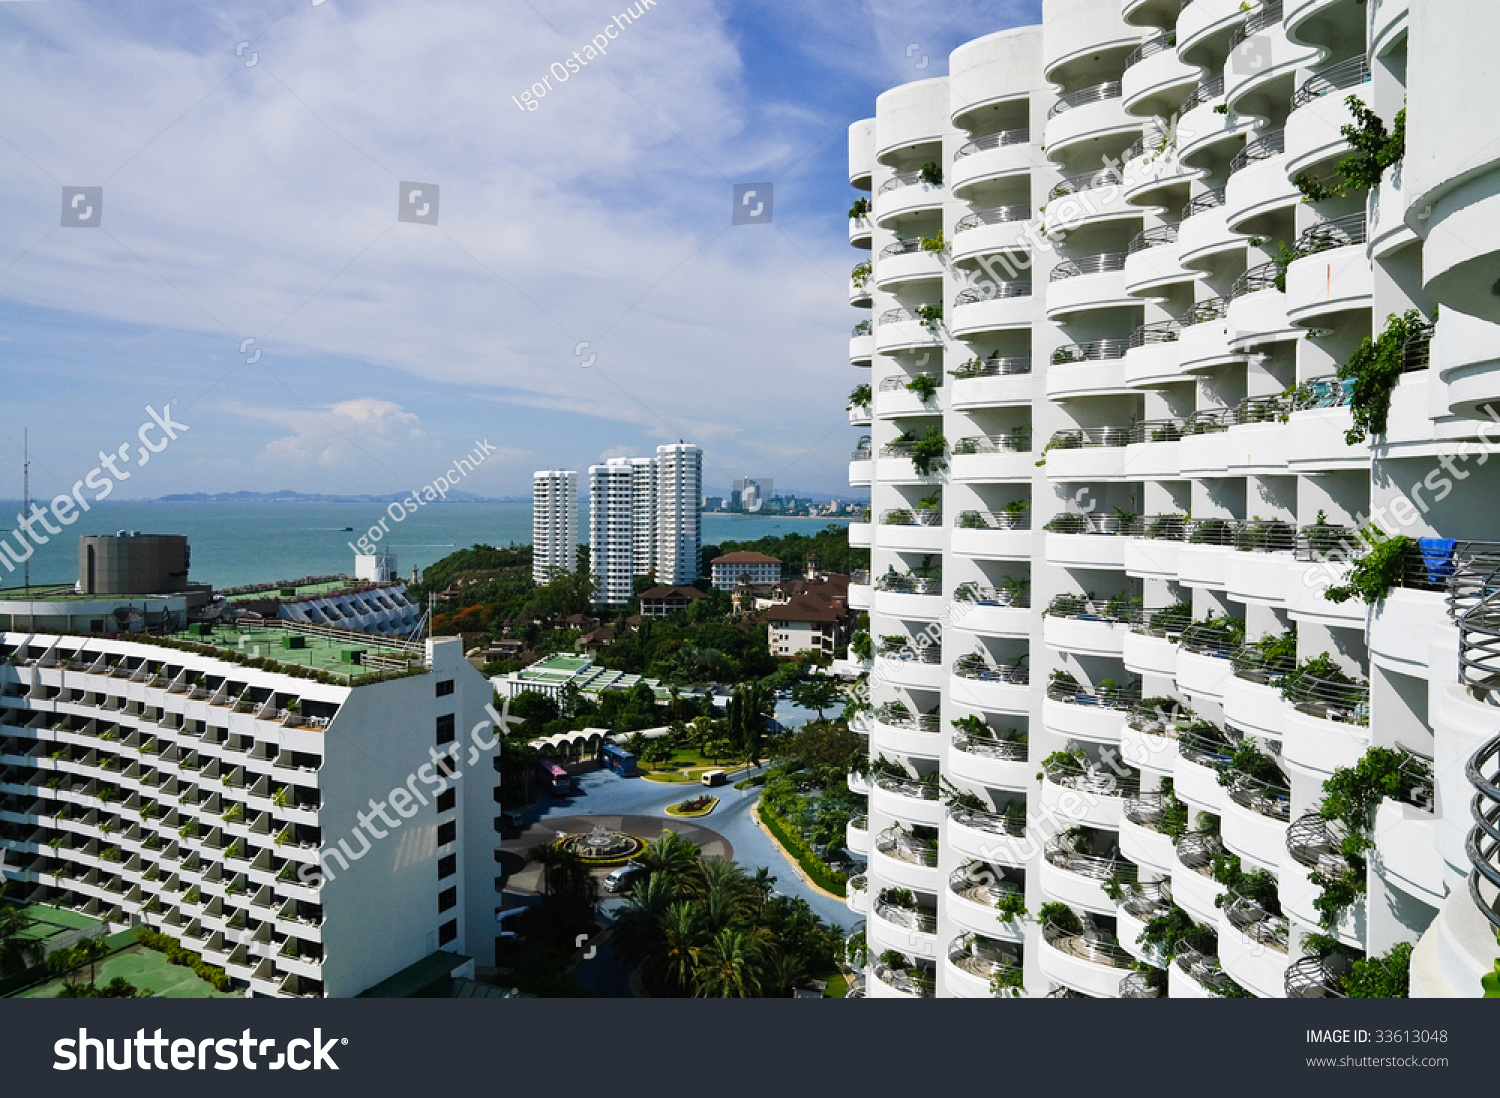 White hotel facade with balconies stock photo 33613048 for Hotels with balconies